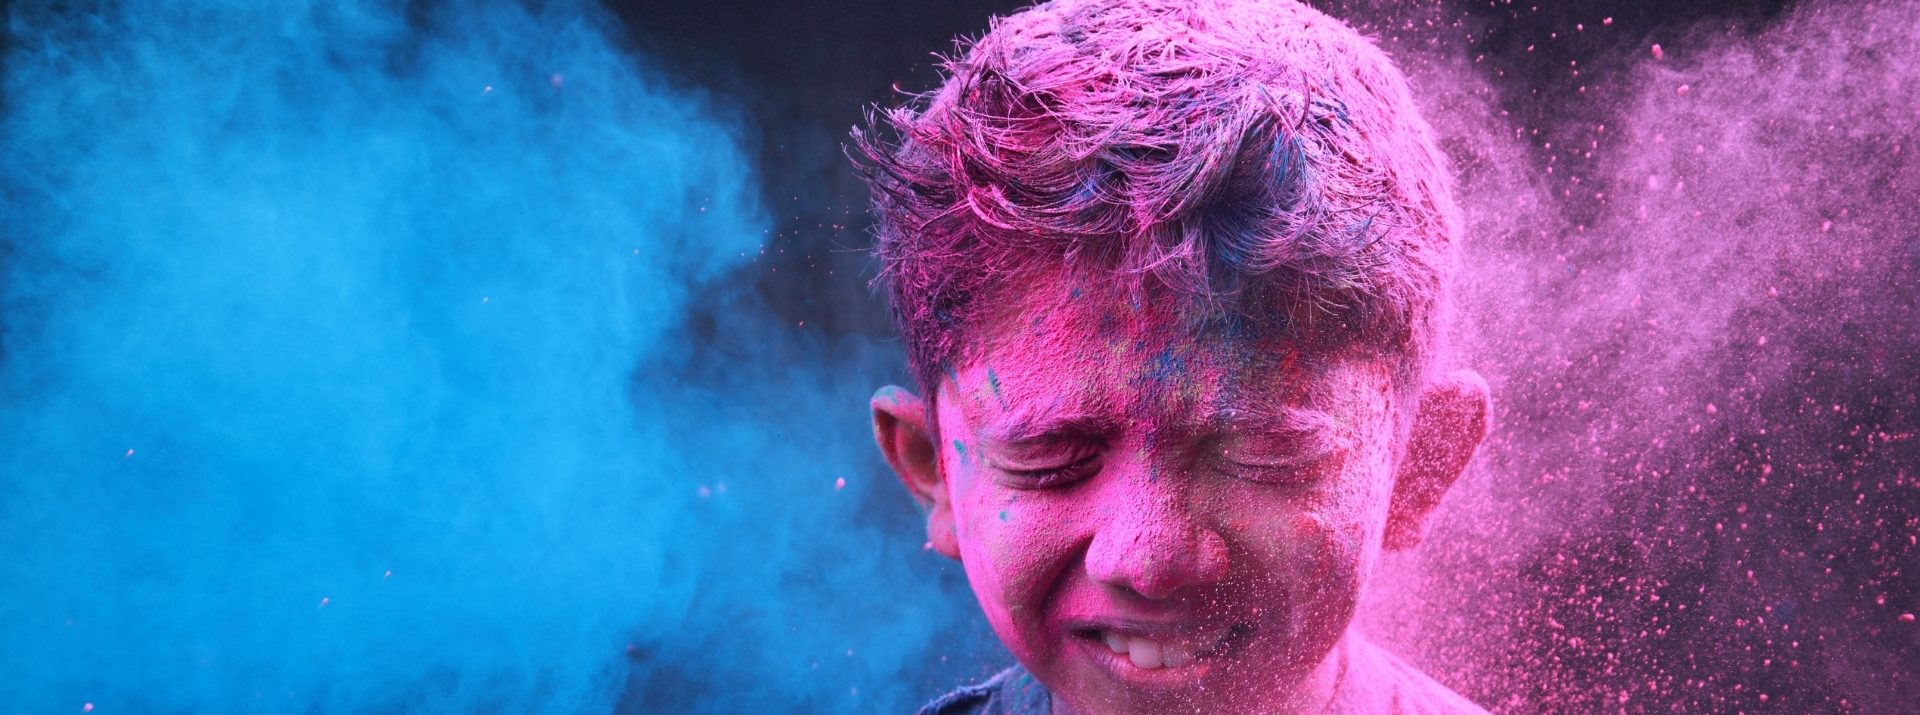 child with colour